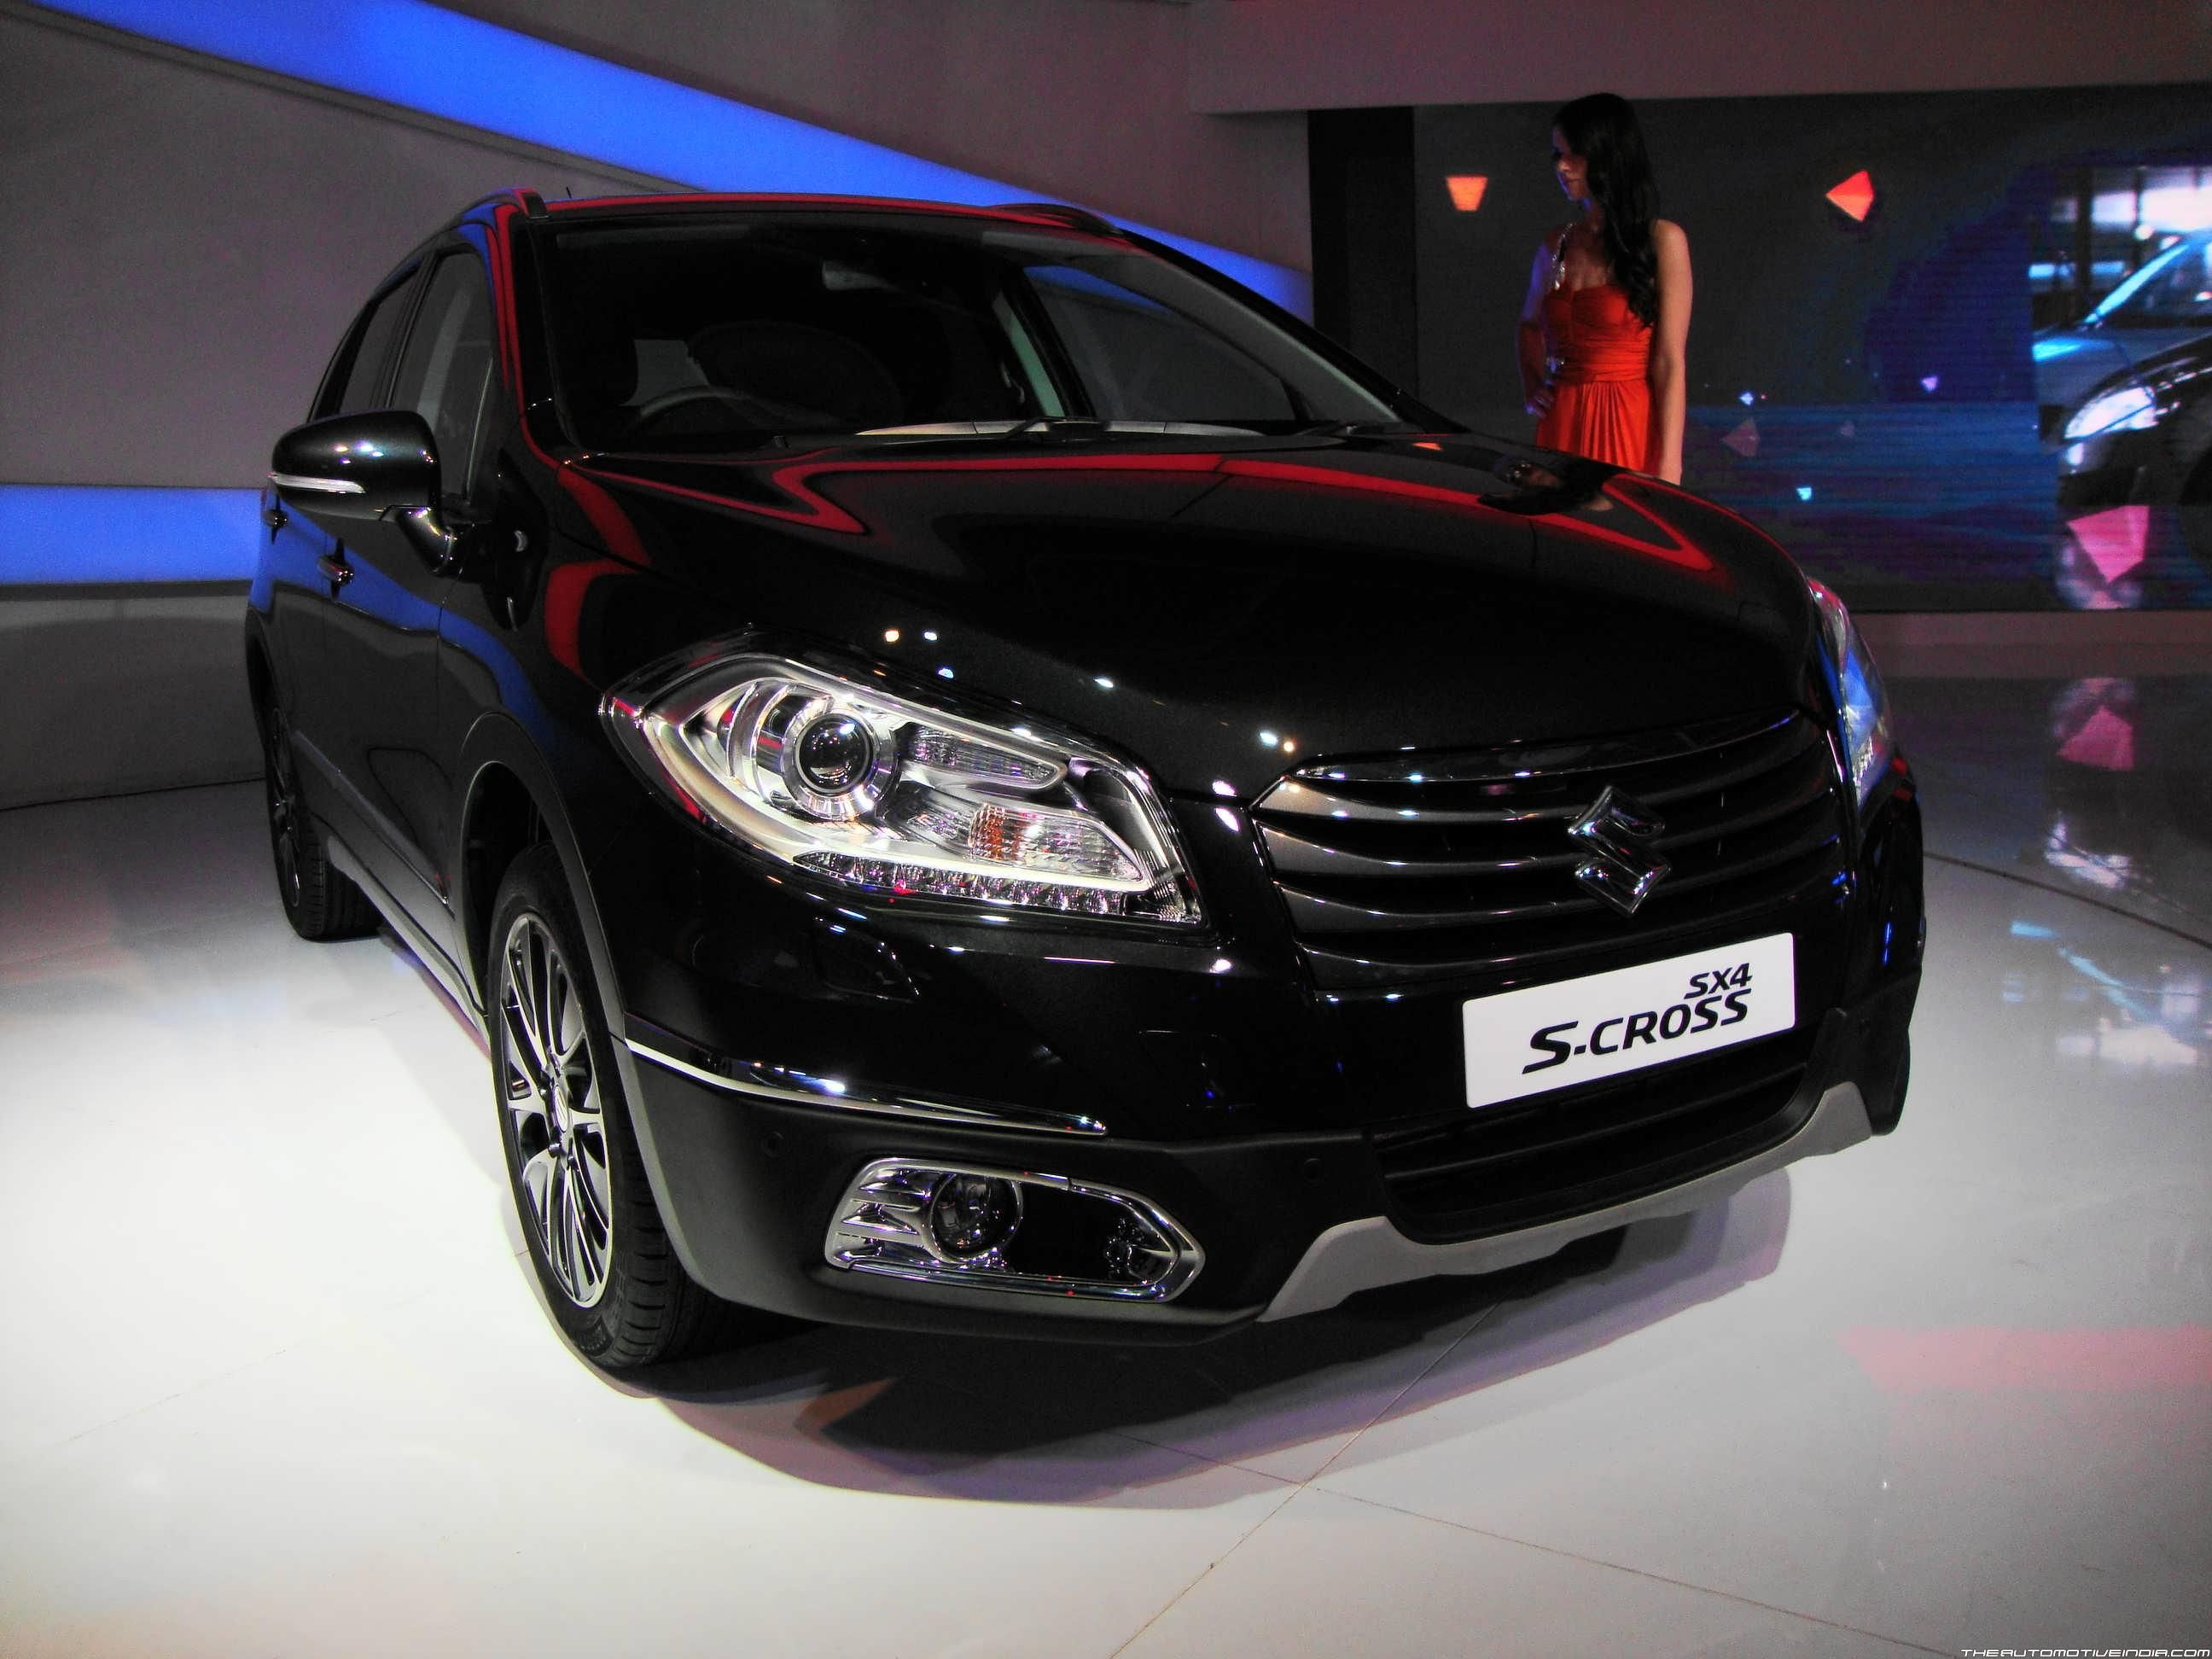 Maruti suzuki sx4 s cross crossover launch likely in january 2015